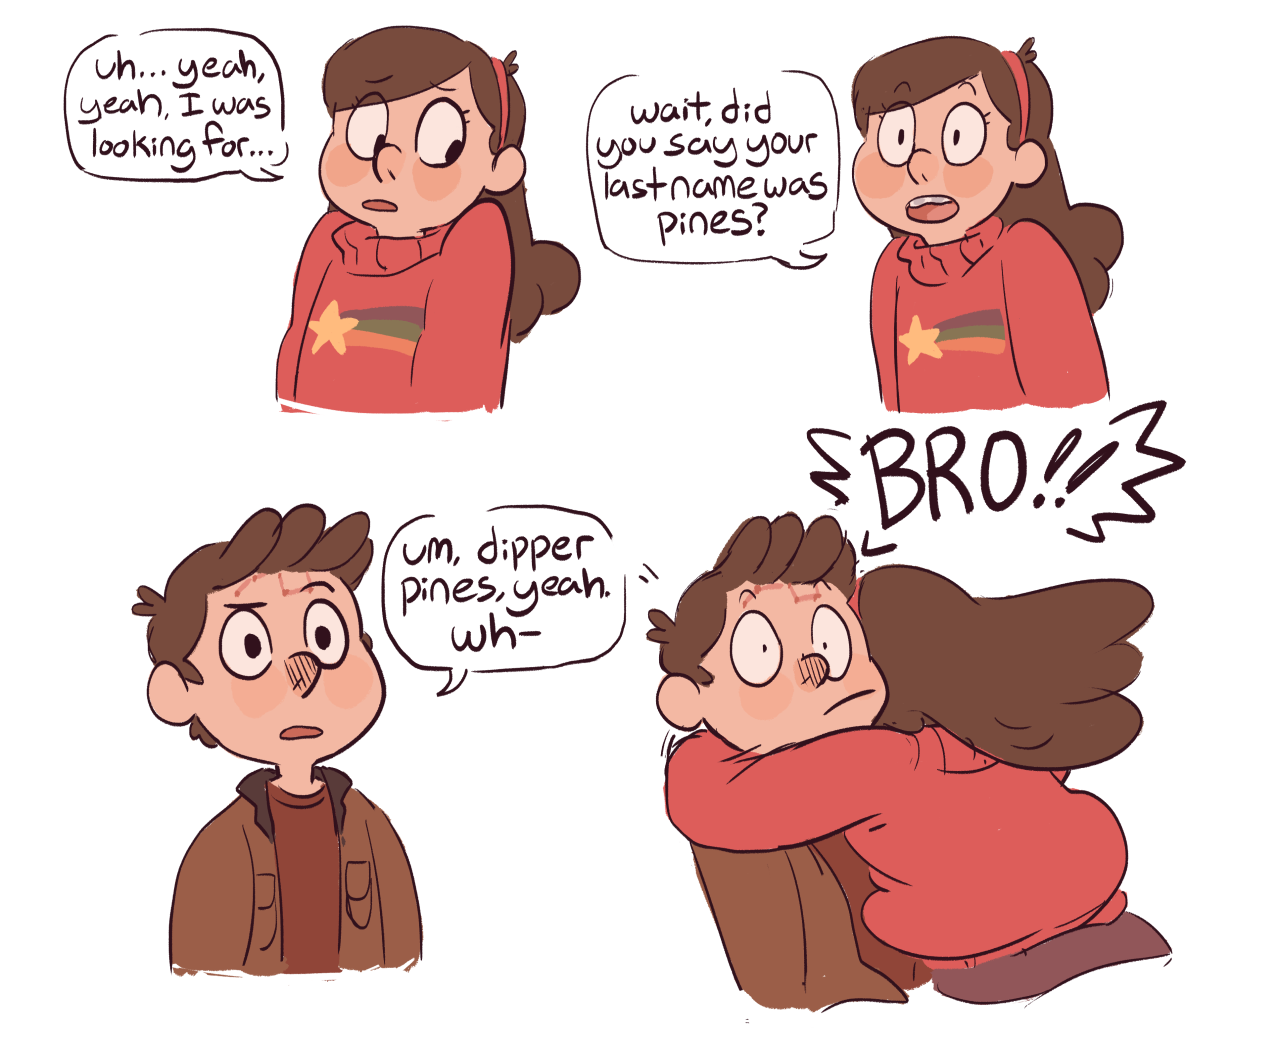 reunion falls AU 7 a gravity falls au in which mabel and dipper, for (possibly supernatural) reasons unknown, were separated at birth, and while mabel grew up as an only child in her normal home with normal parents, dipper grew up in gravity falls raised by grunkle stan. but at age 12 mabel learns of dipper's existence and decides to pay her long lost twin a surprise visit, completely unaware of the kind of wacky business going on in his hometown